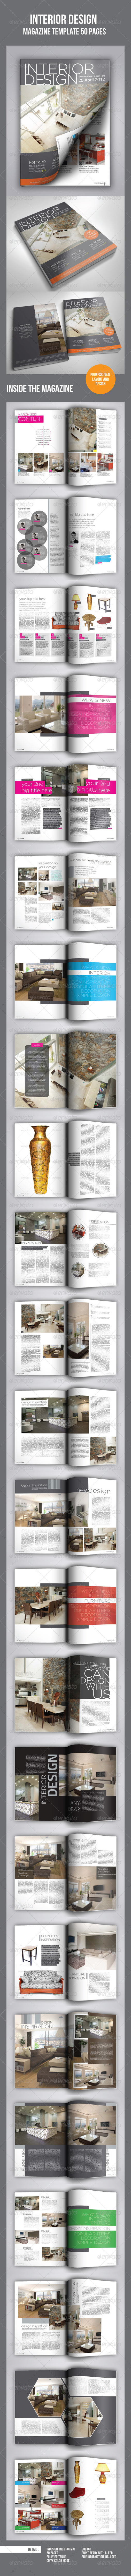 A4 50 Pages mgz (Vol. 2) - Magazines Print Templates